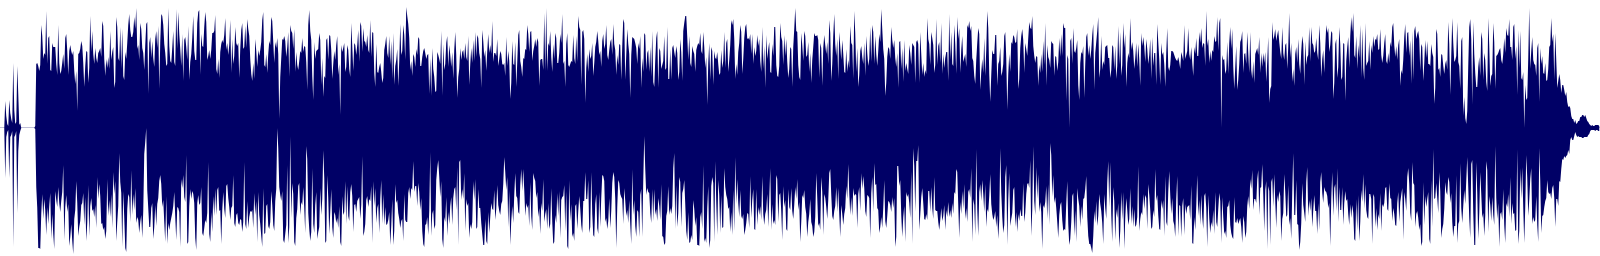 waveform of track #148645